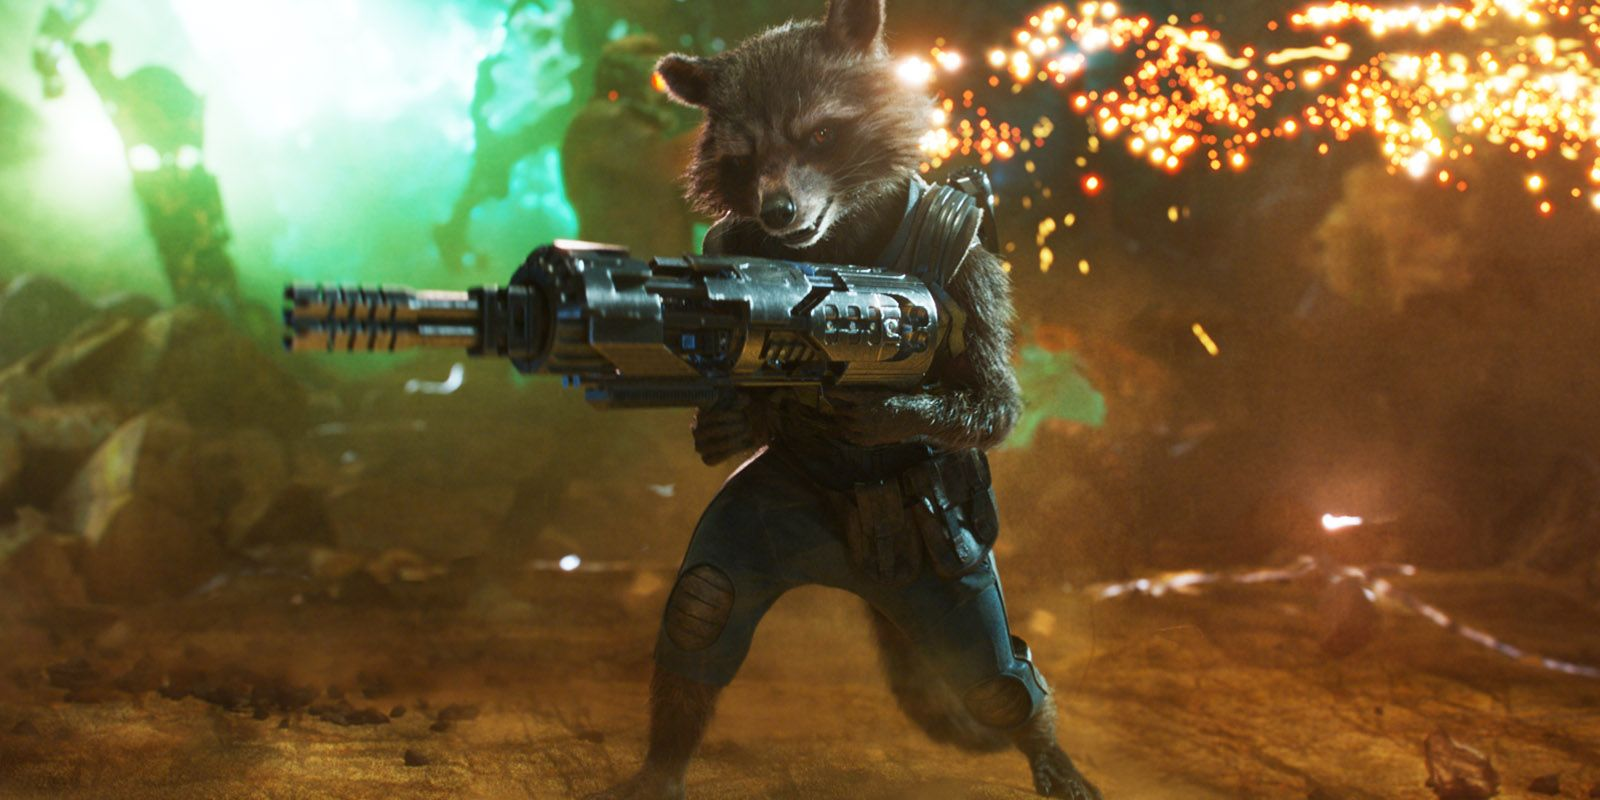 who plays rocket raccoon in guardians of the galaxy